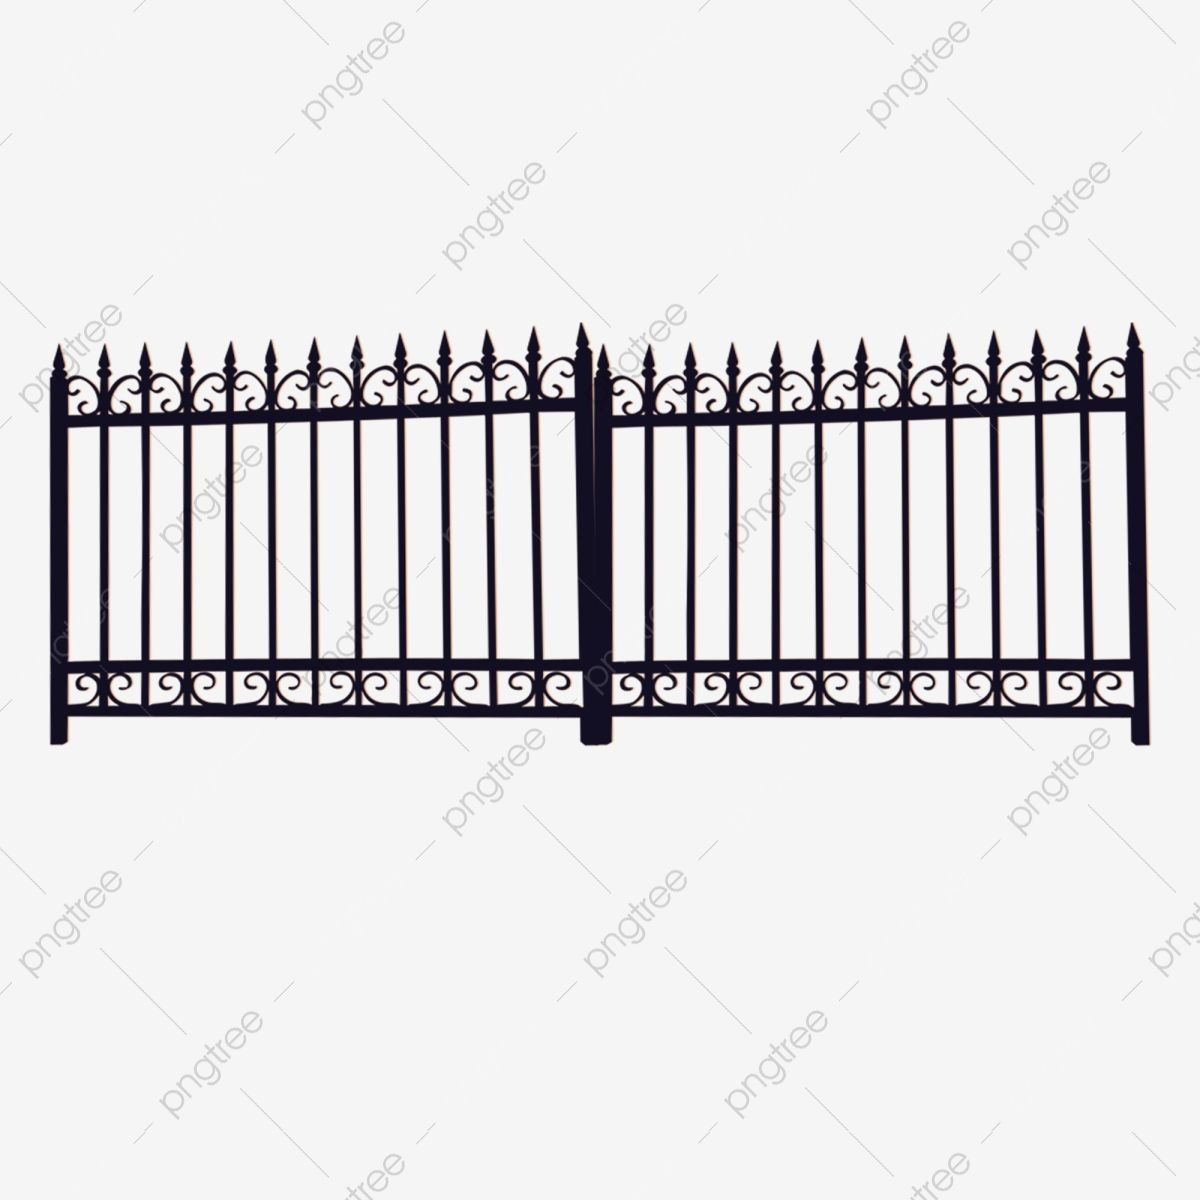 Cartoon Big Iron Gate Png Download Gate Clipart Cartoon Iron Gate Big Iron Gate Png Transparent Clipart Image And Psd File For Free Download Iron Gate Gate Clipart Images